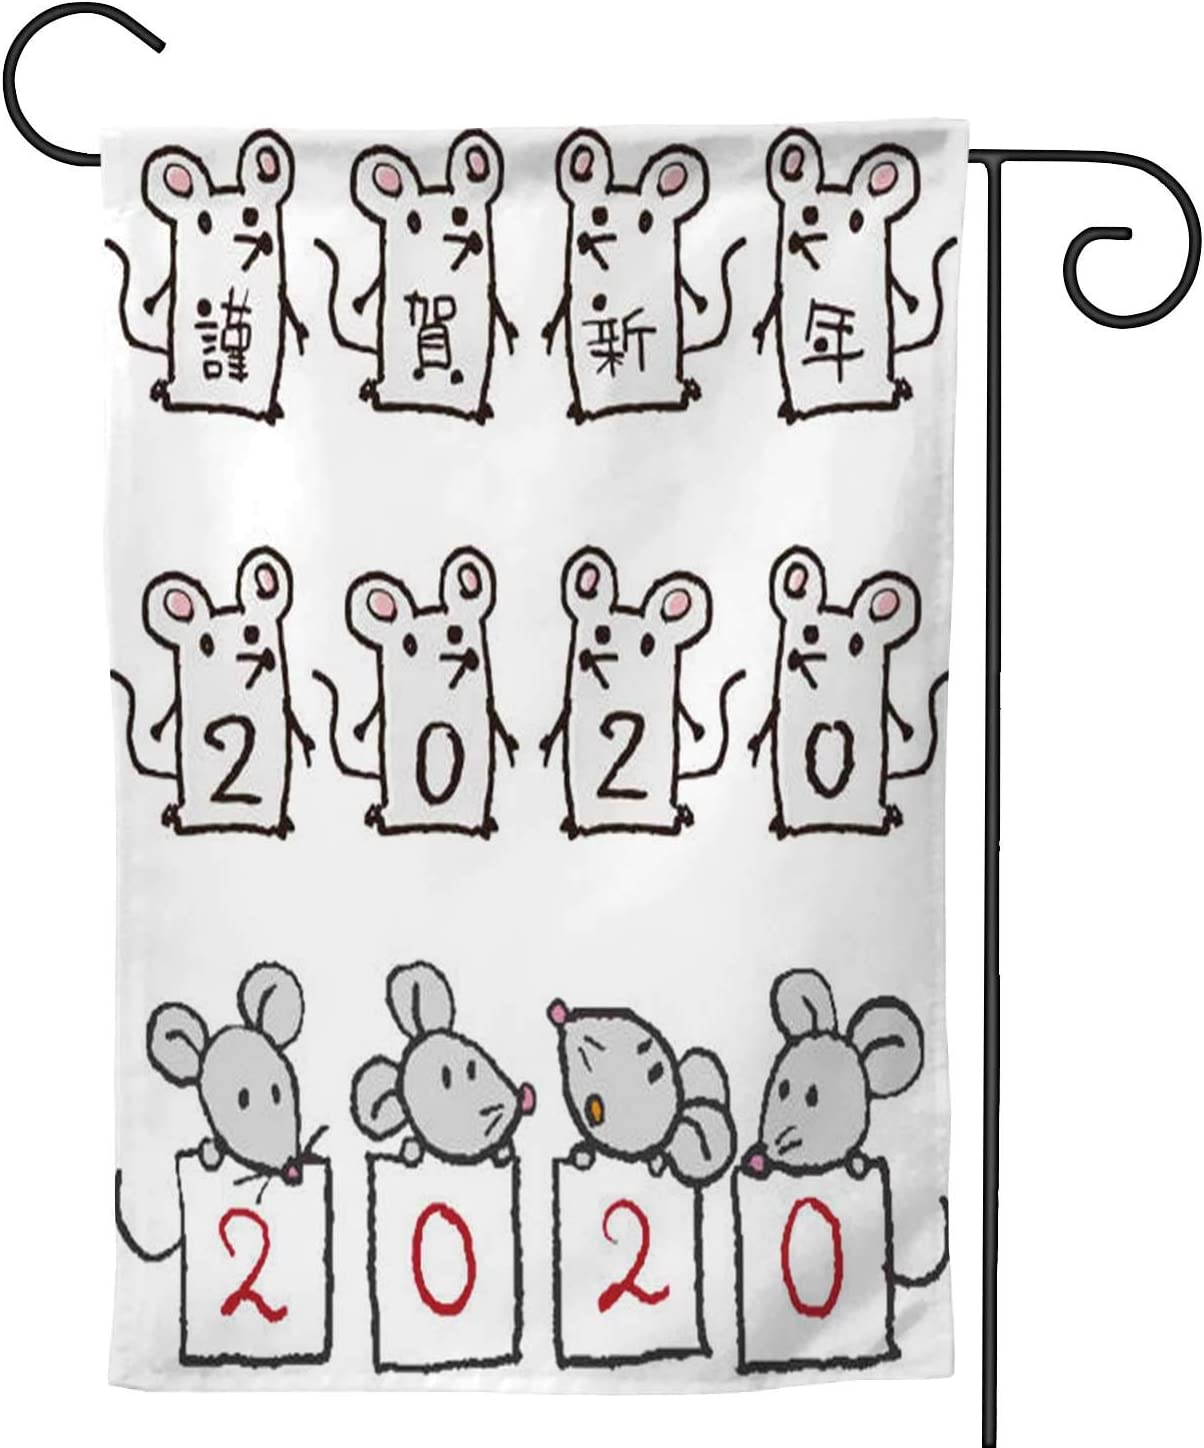 C COABALLA Hand Drawn Cute Mouse Rat - with Greeting Words - Japan,Welcome Garden Flag Double Sided Farmhouse Burlap Rustic Yard Outdoor Decoration Mouse - Animal 12.5''x18''